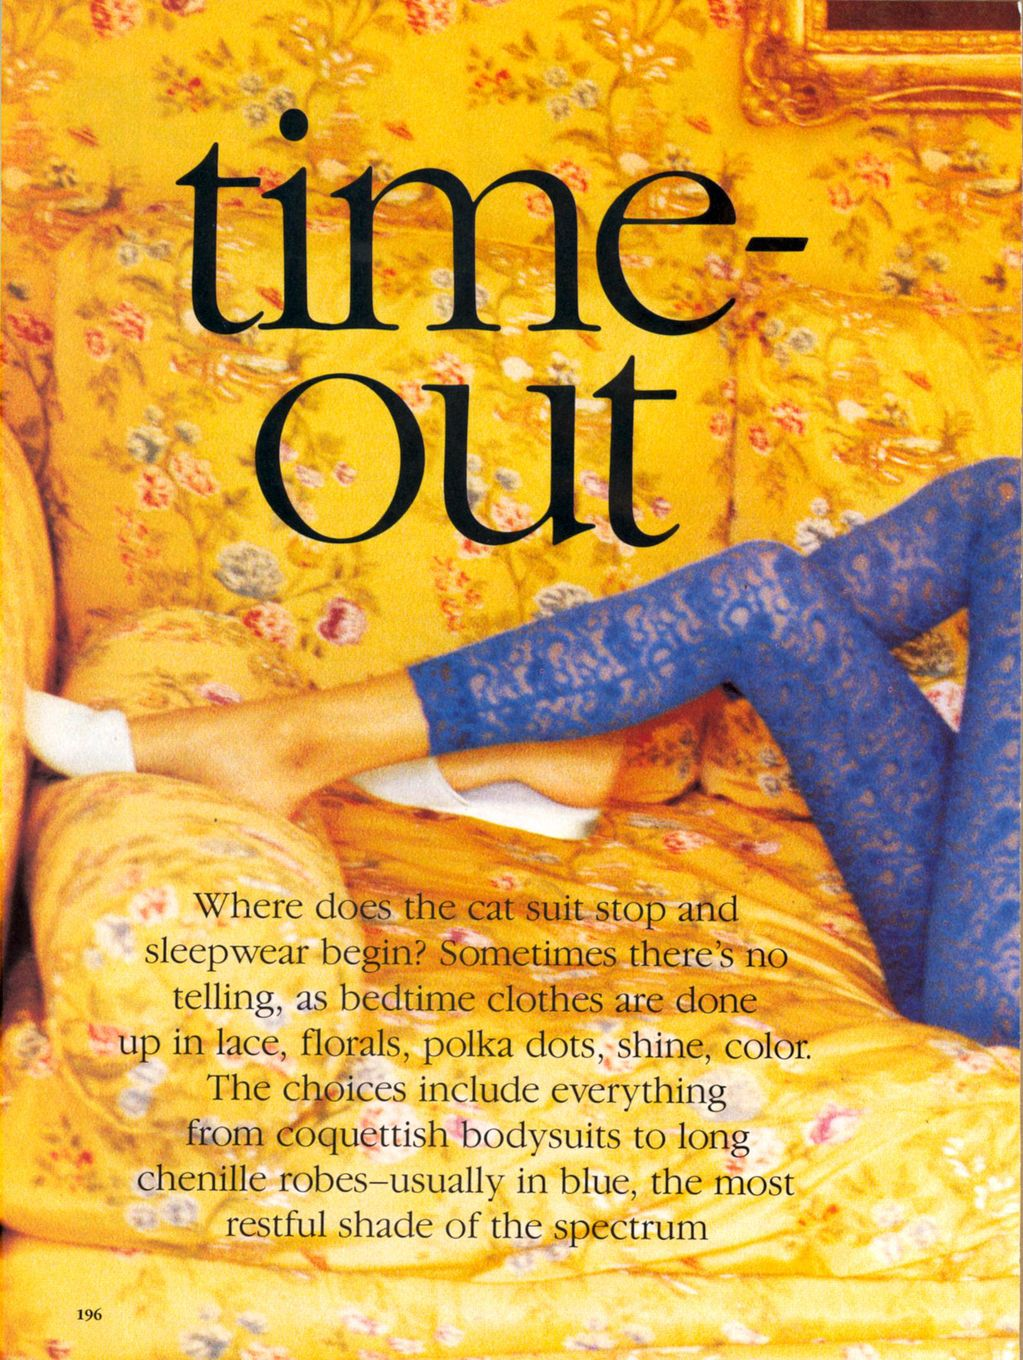 Vogue (US) January 1991 | Time Out 01.jpg